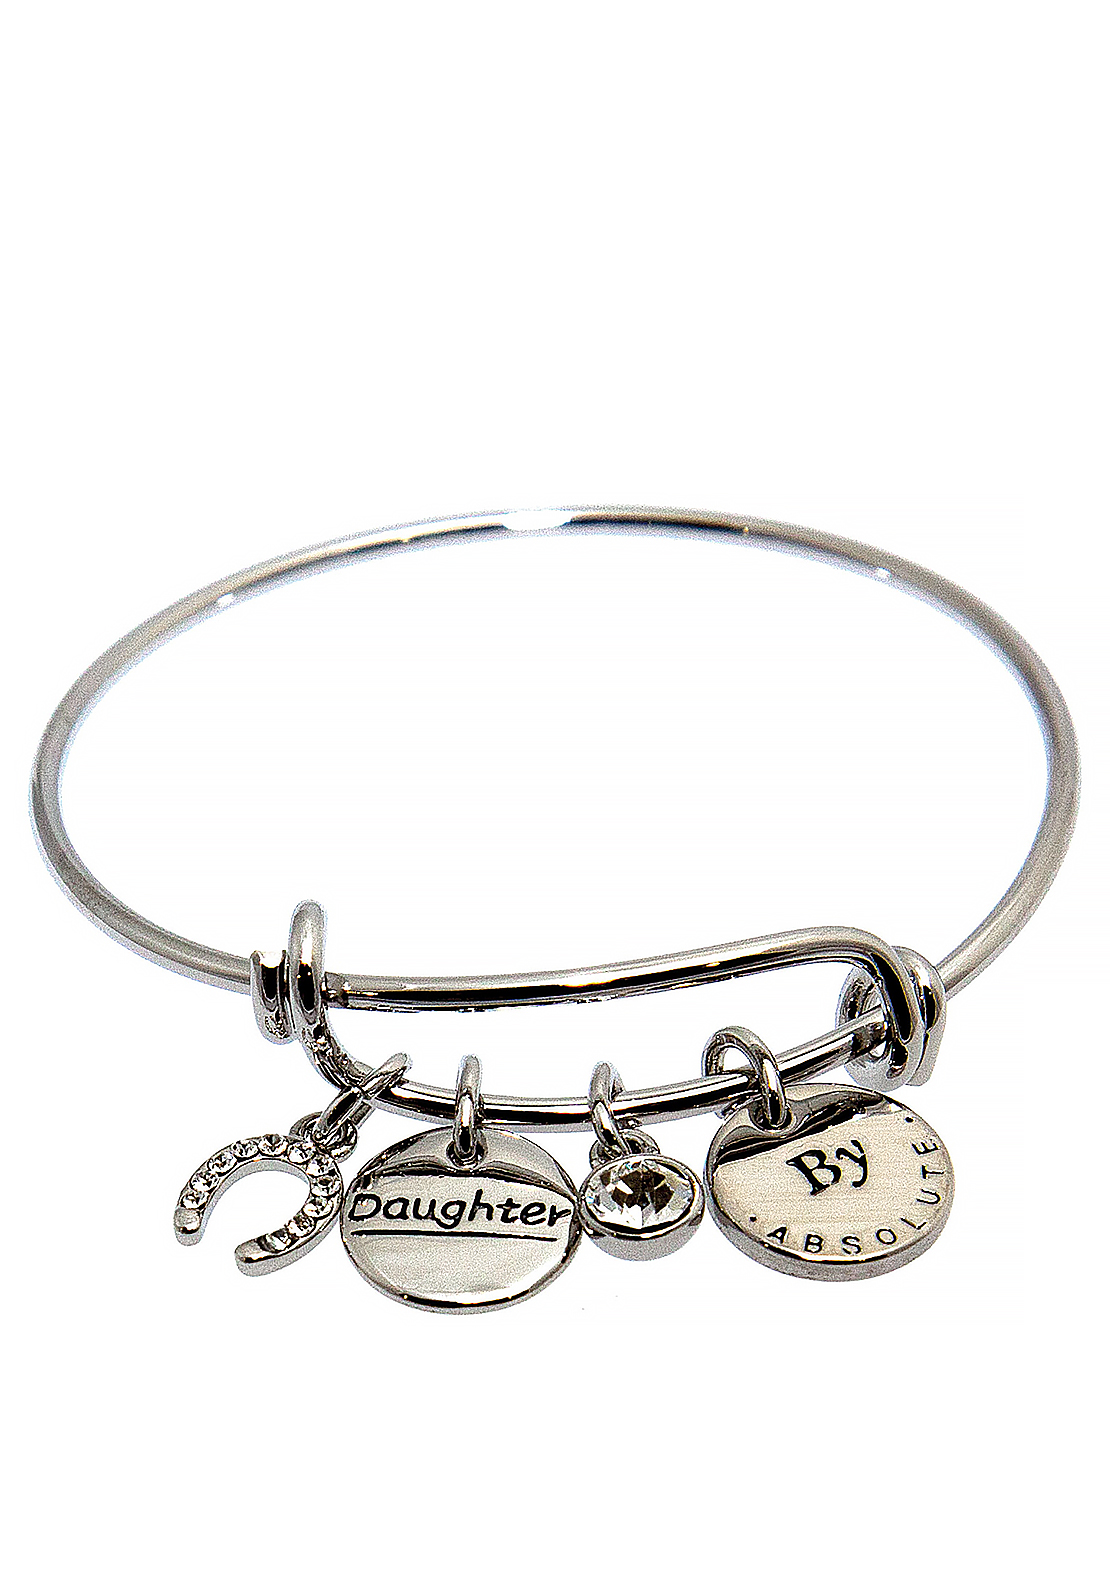 Absolute Jewellery Girls Daughter Charm Bangle, Silver